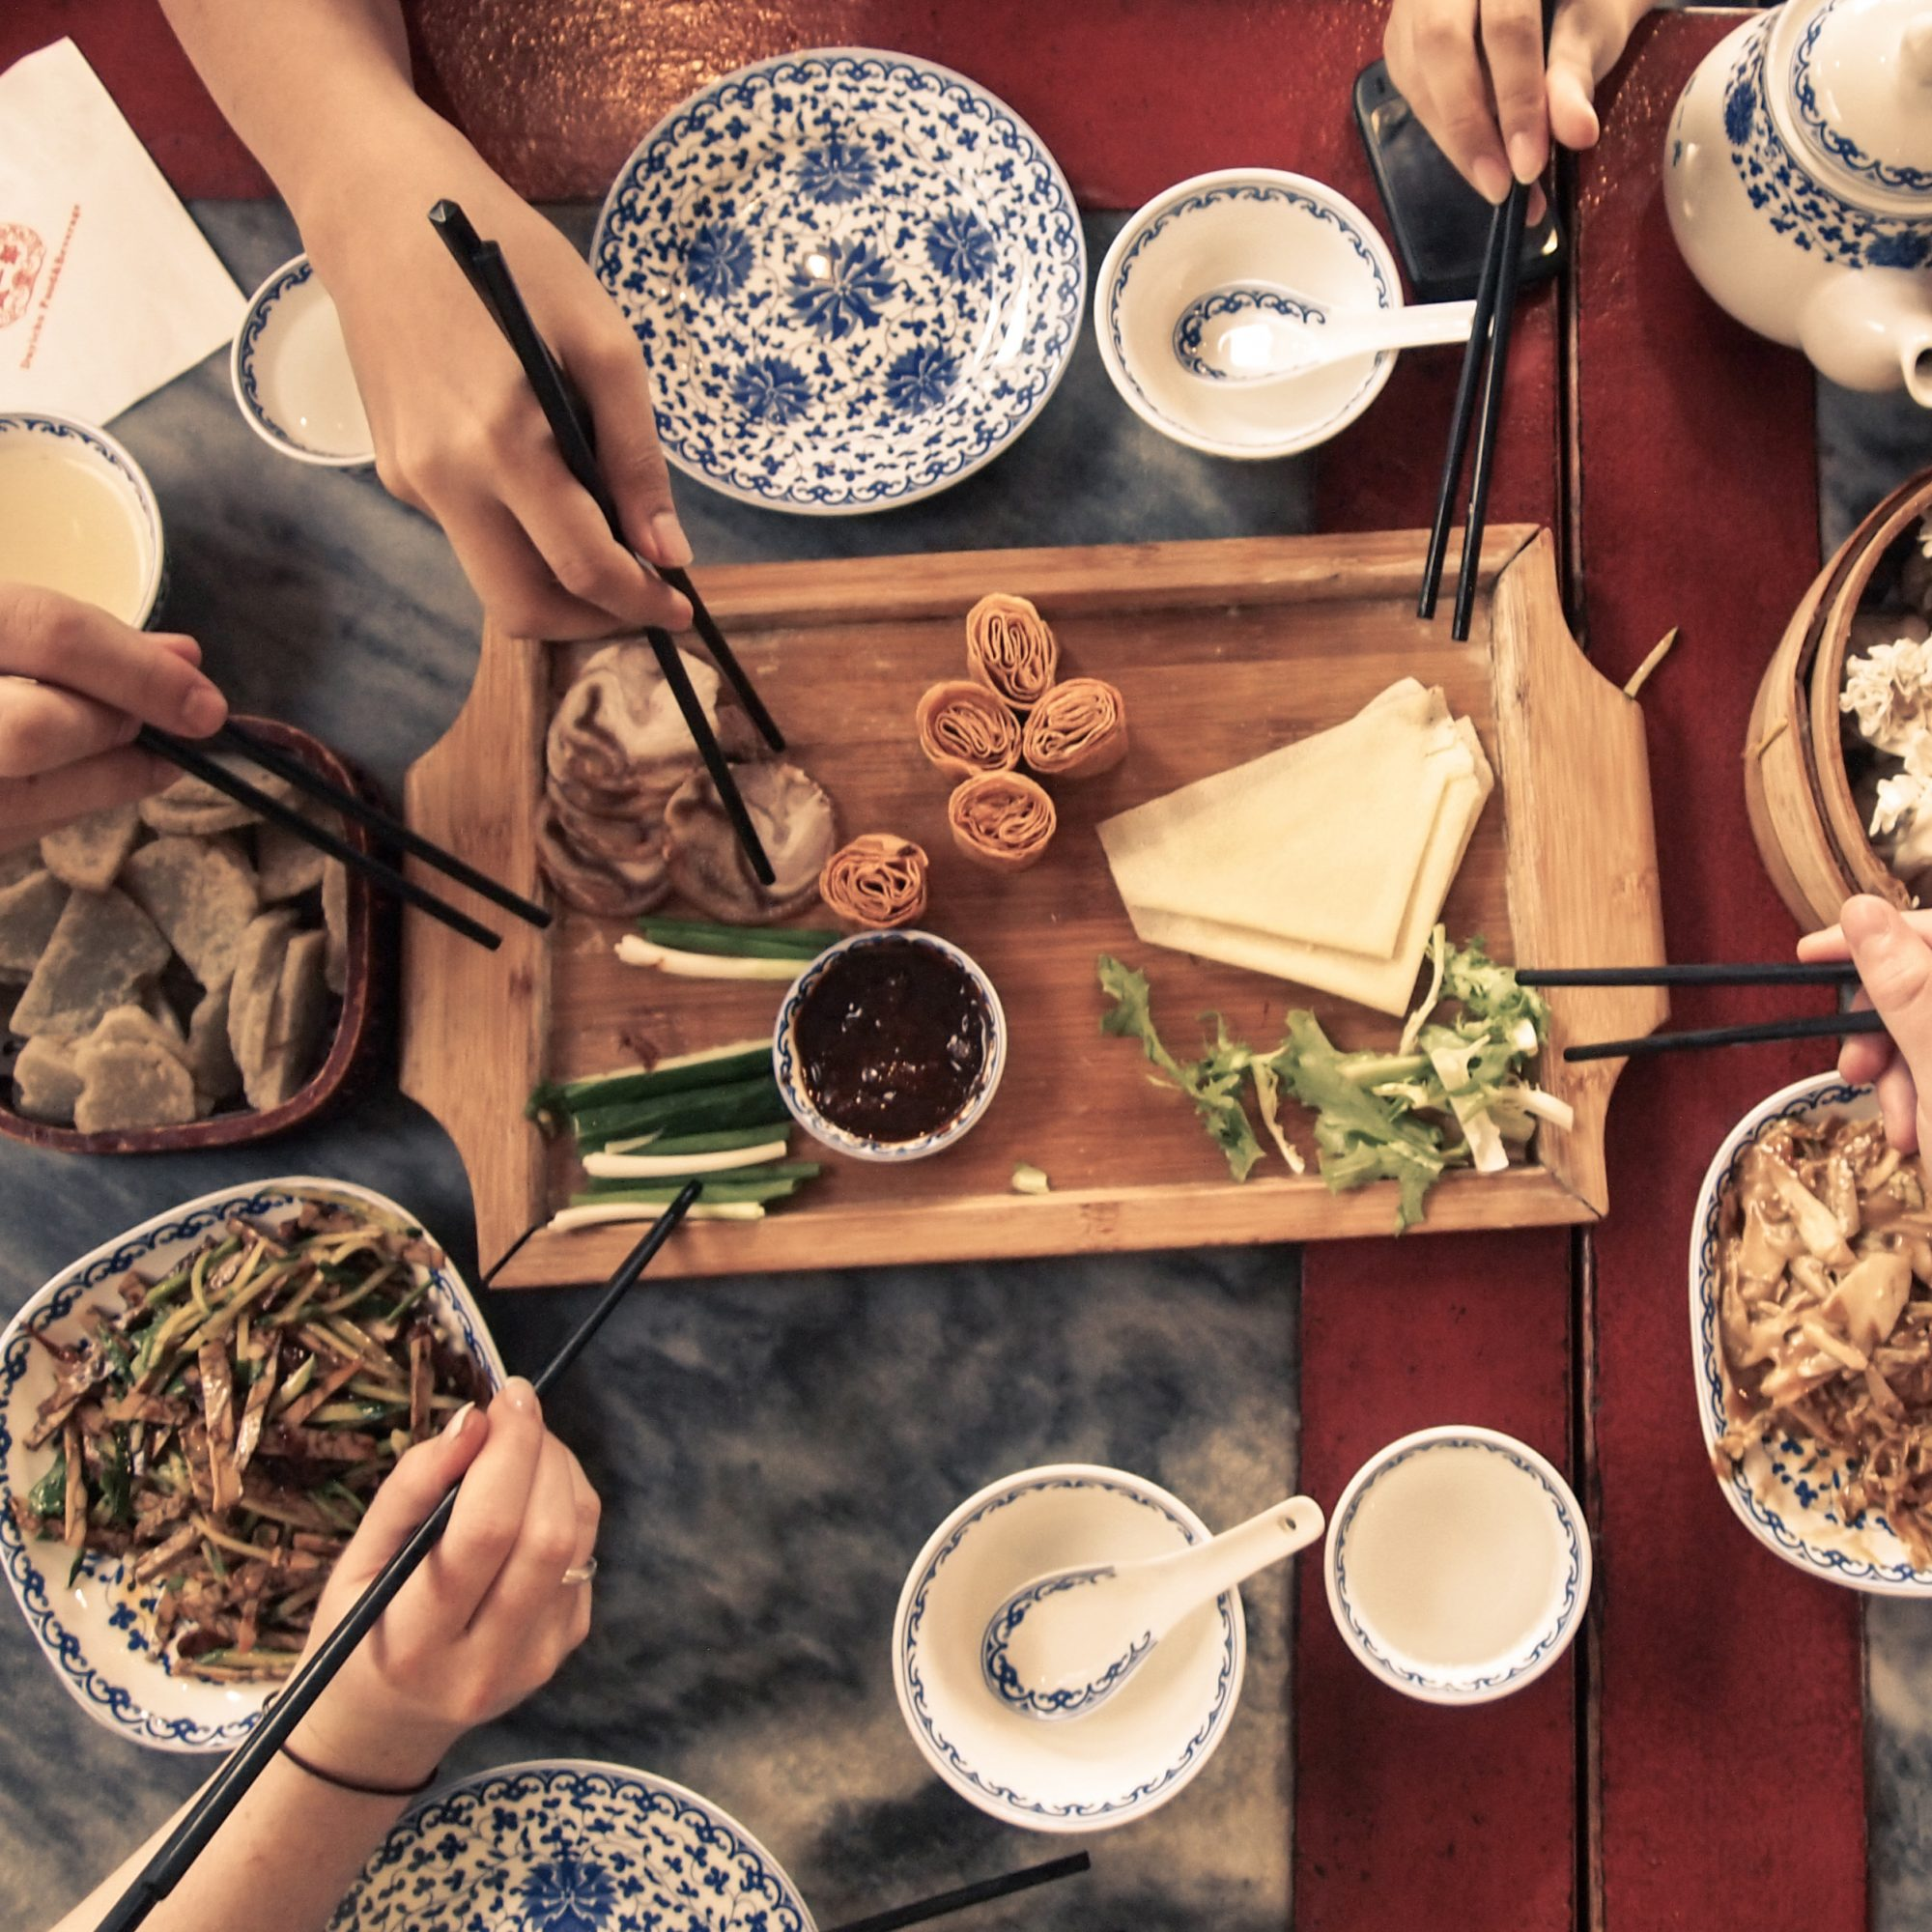 FWX CHINESE RESTAURANT NAMES